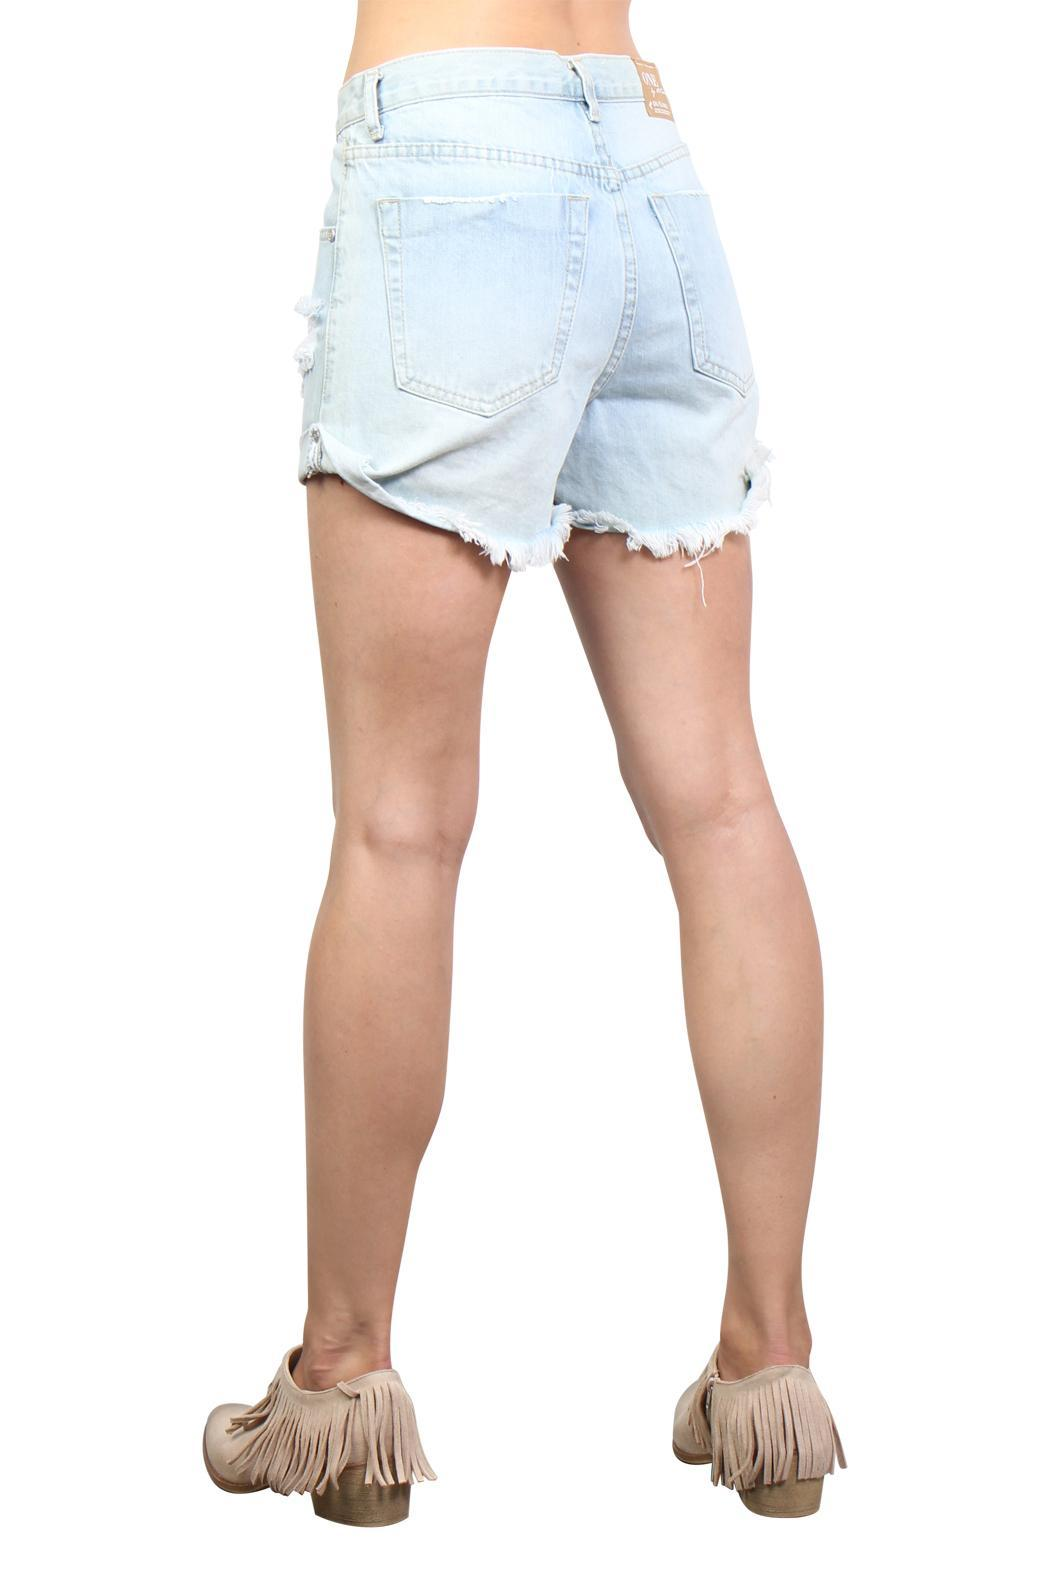 One Teaspoon Wilde Outlaw Denim Shorts - Back Cropped Image